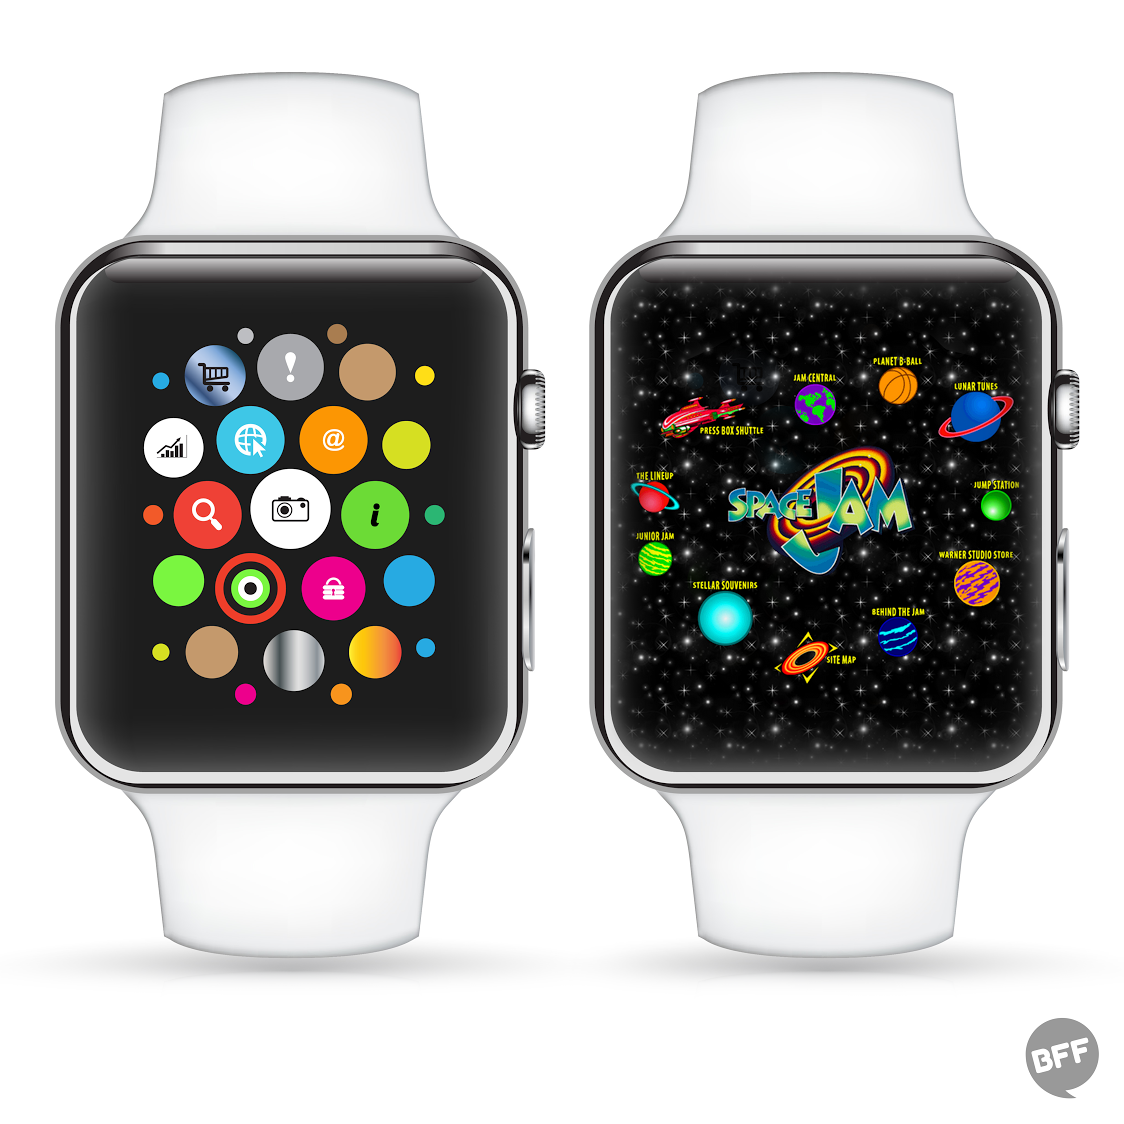 LOVE THIS RT @YrBFF: hmmm. the Apple Watch home screen looks... familiar. http://t.co/x1ZO1rCkTx